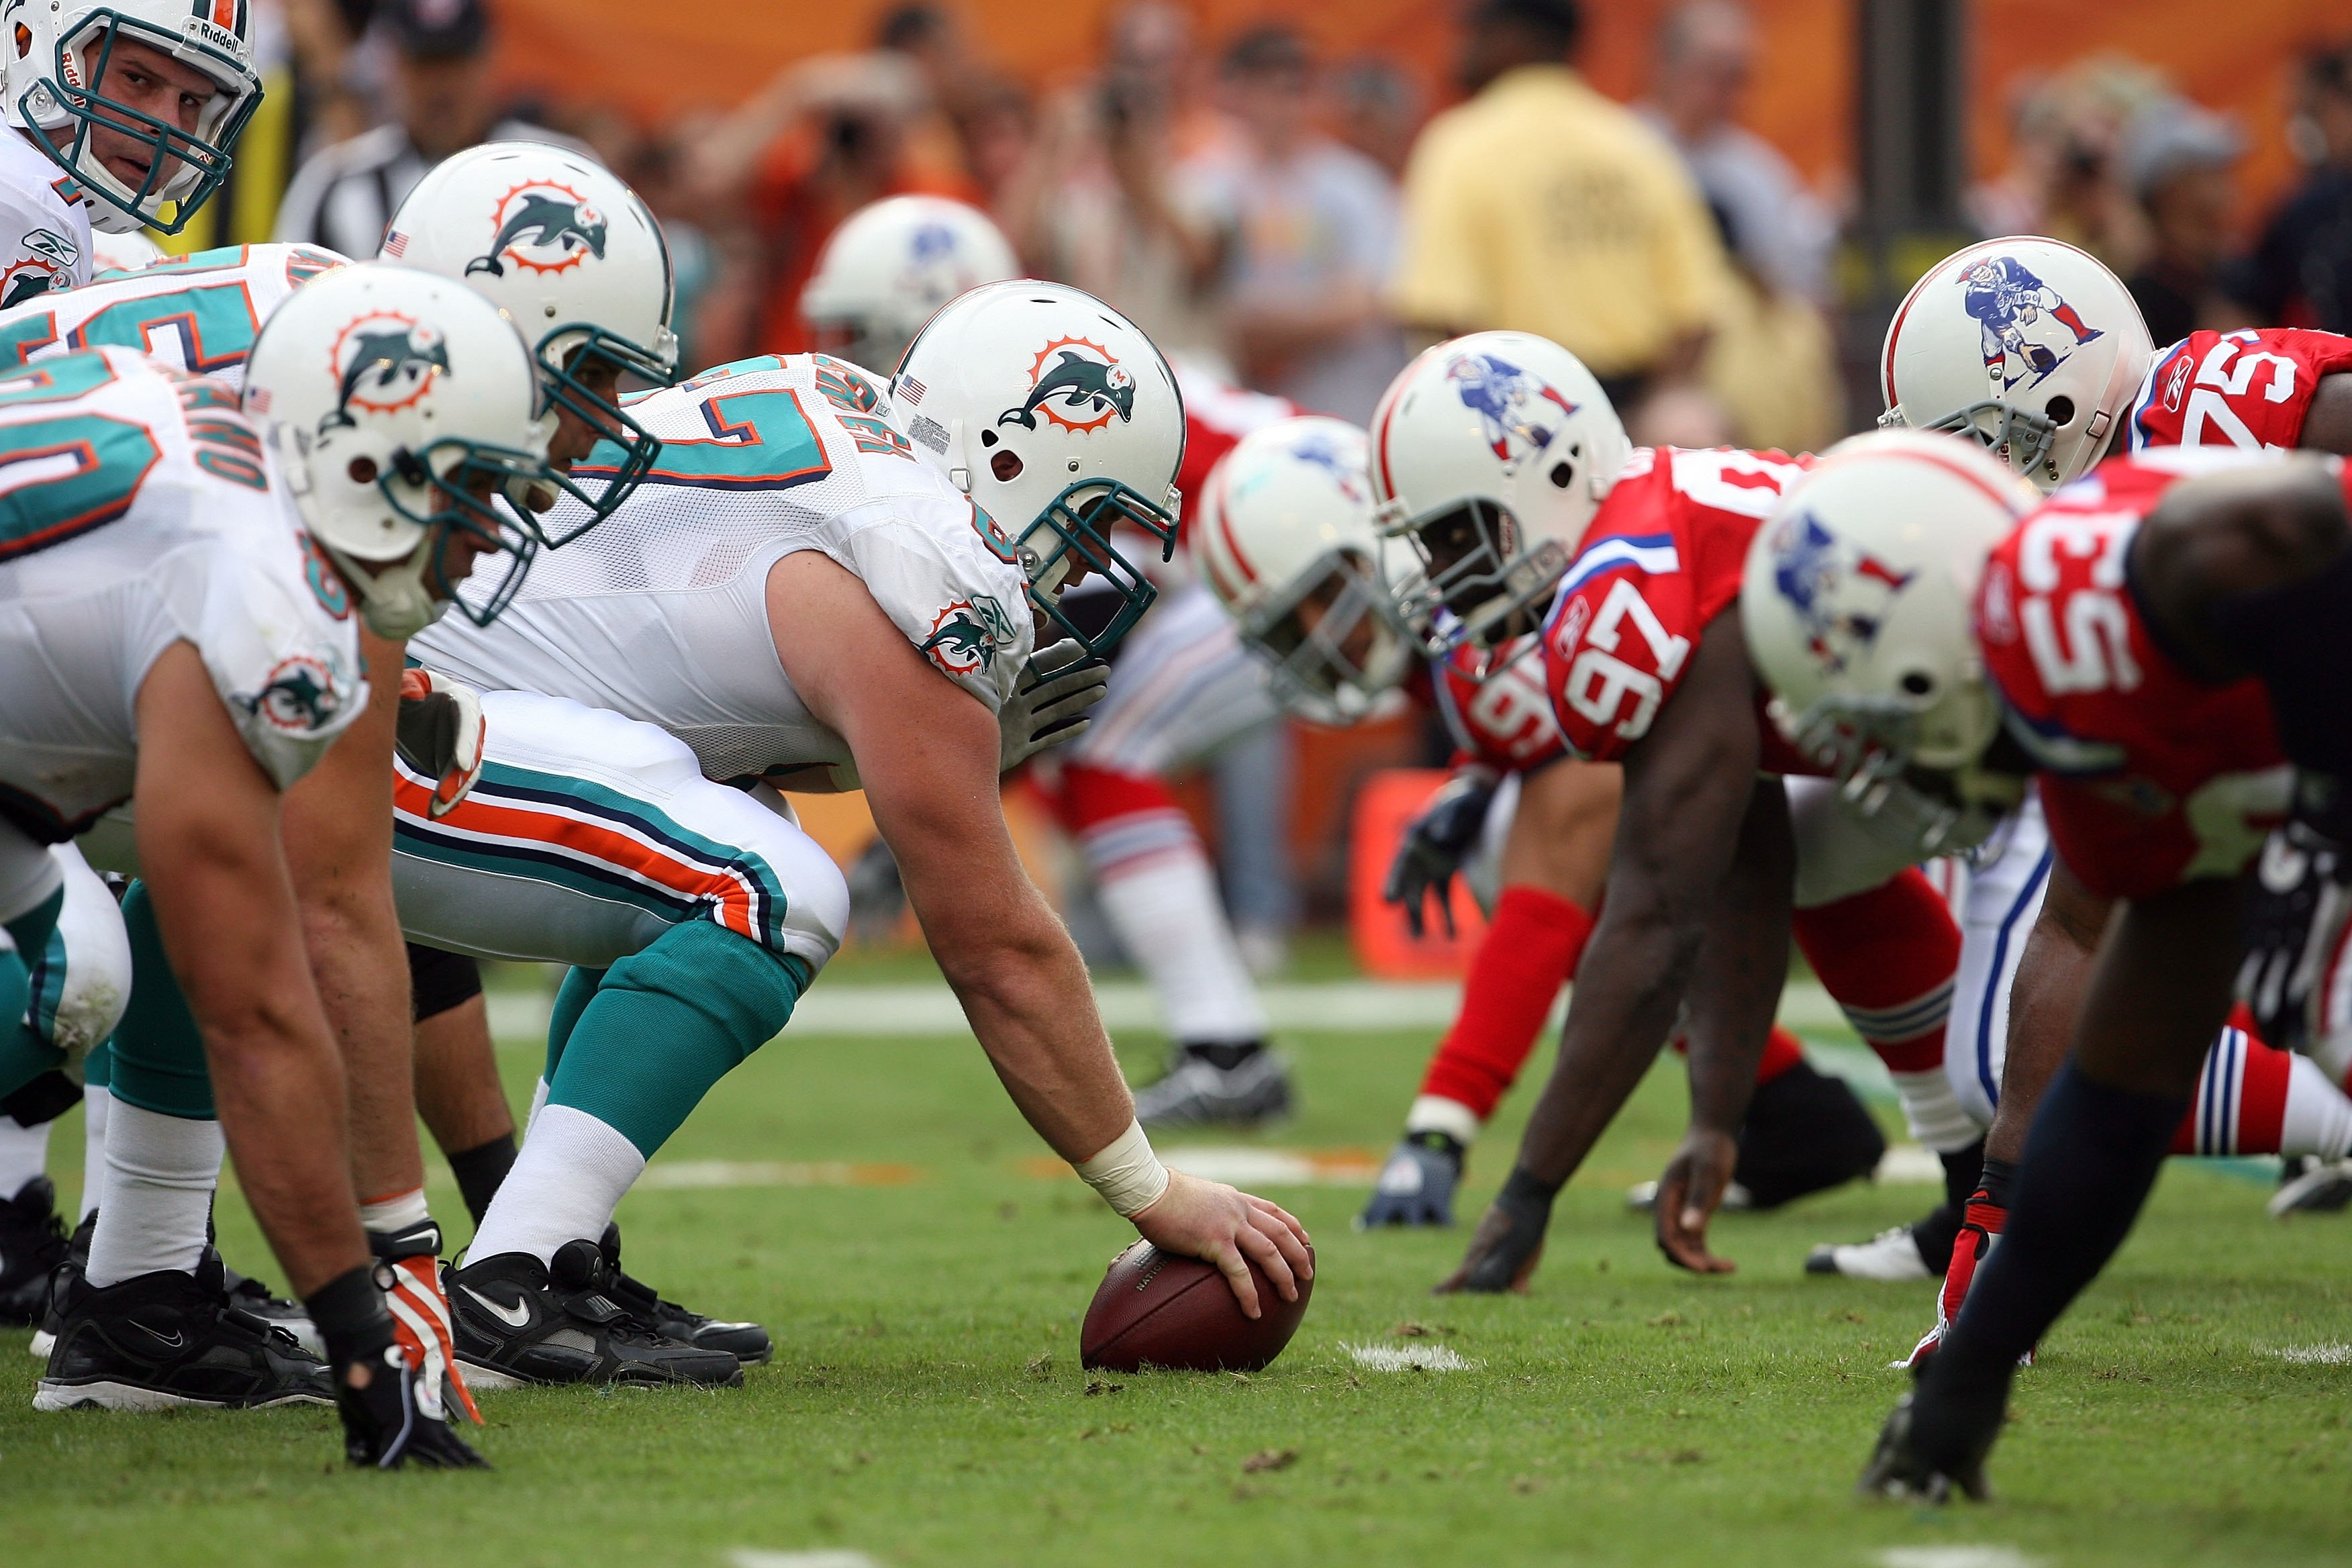 5970423d4 Miami Dolphins Blueprint: 10 Point Plan For Victory in 2010 NFL Season